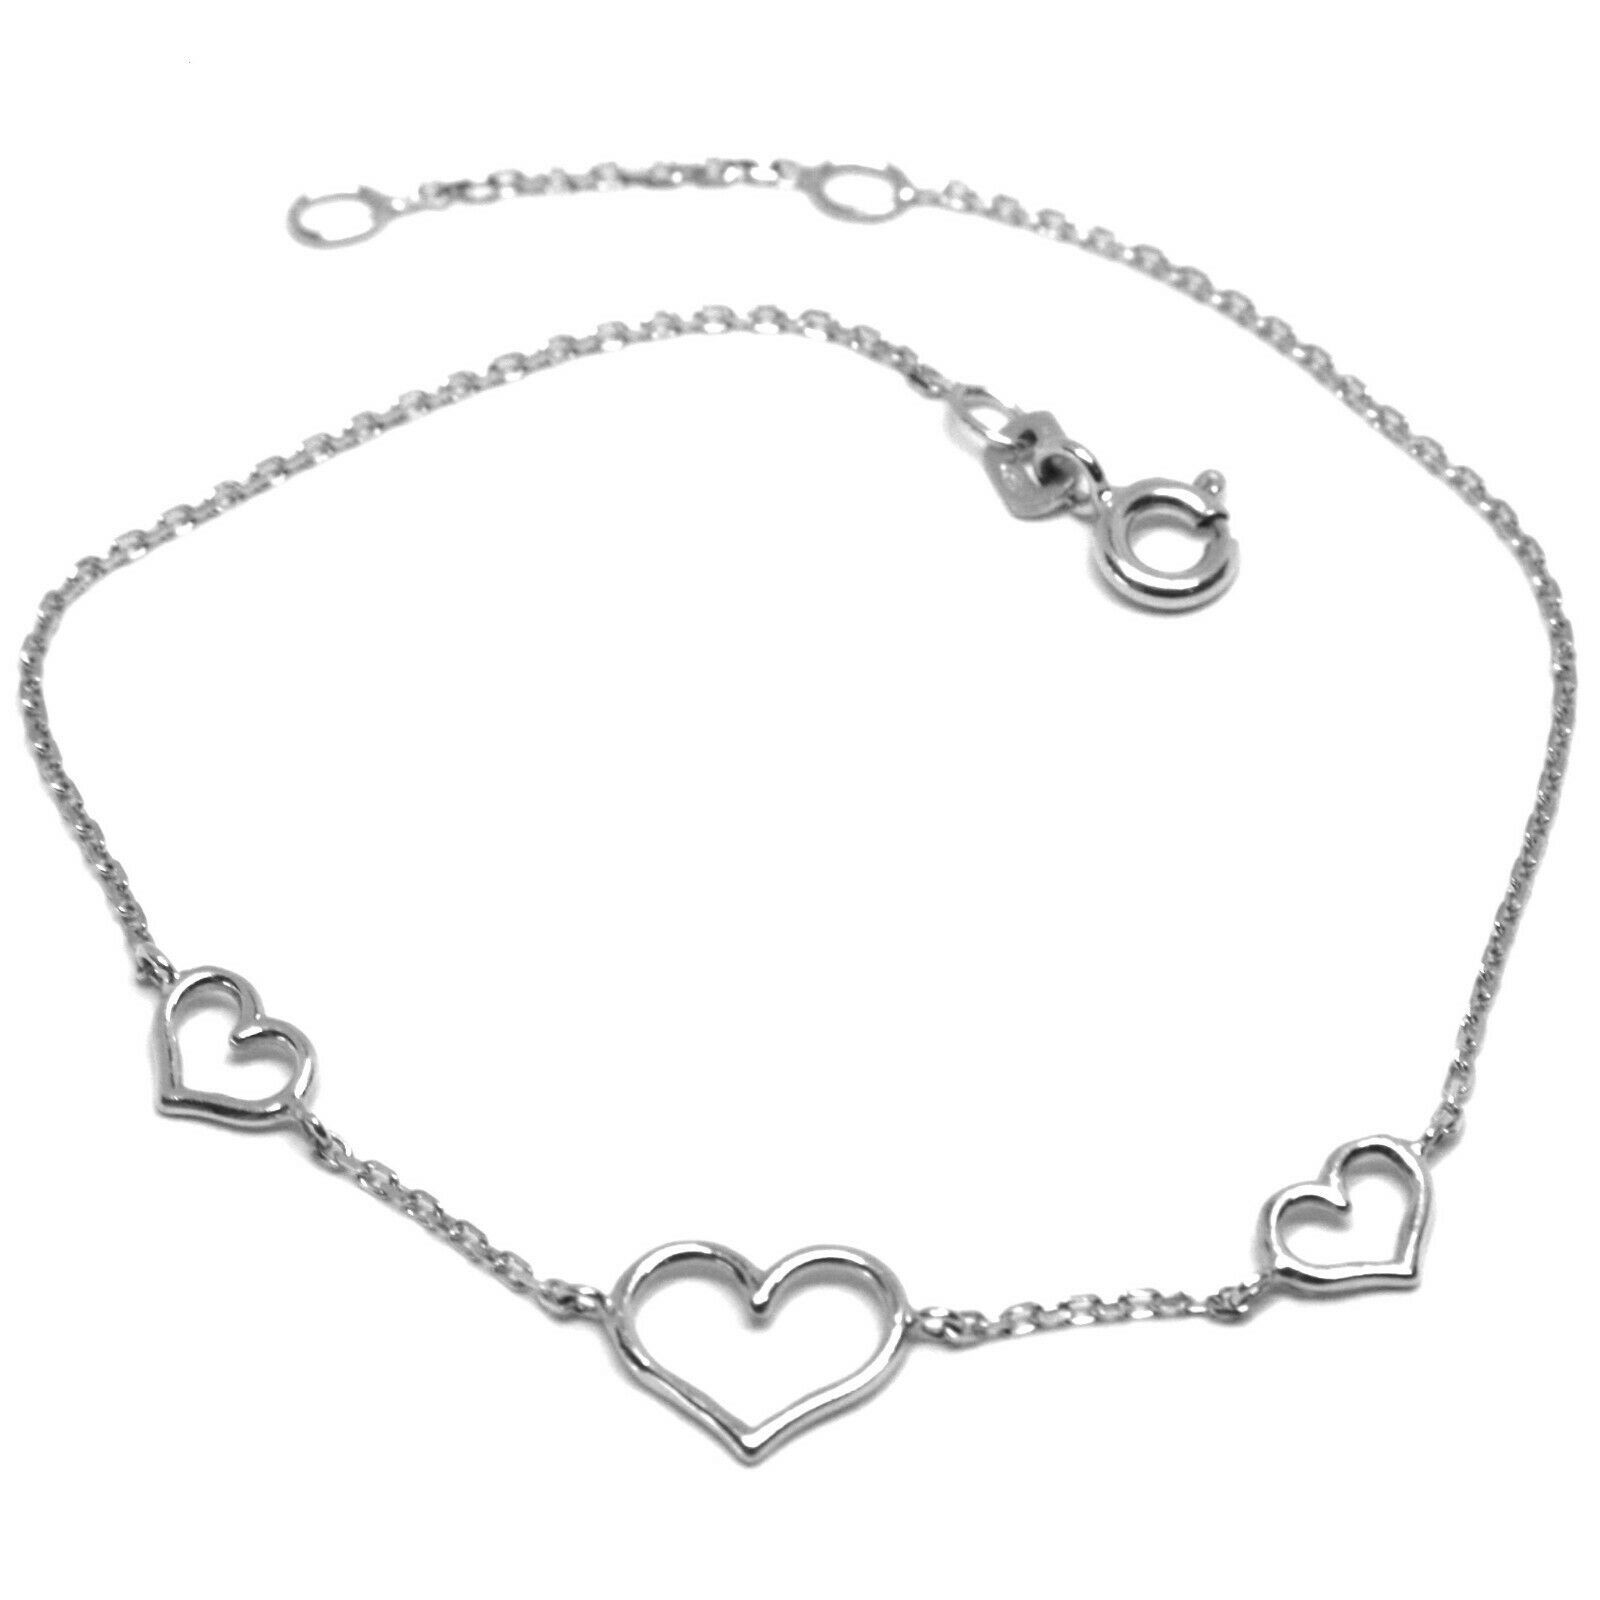 18K WHITE GOLD SQUARE ROLO MINI BRACELET, 7.5 INCHES, 3 HEARTS, MADE IN ITALY